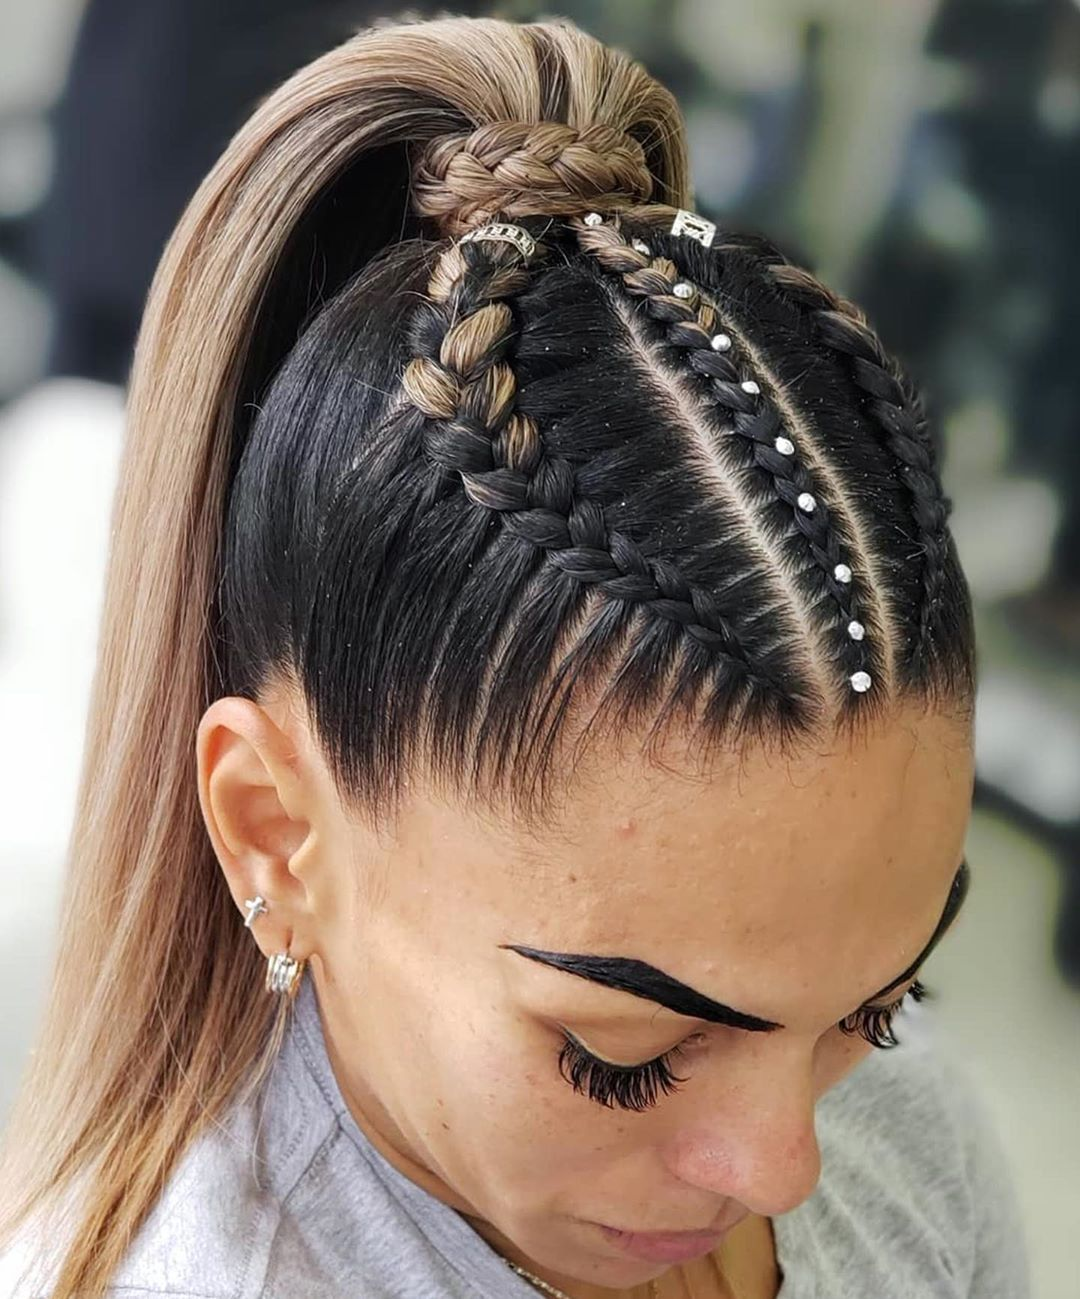 1 2 3 4 5 6 7 8 9 Or 10 Follow Us Tutorialhair4you Credit Jefry Moreno06 Hair Styles Tail Hairstyle Braided Hairstyles